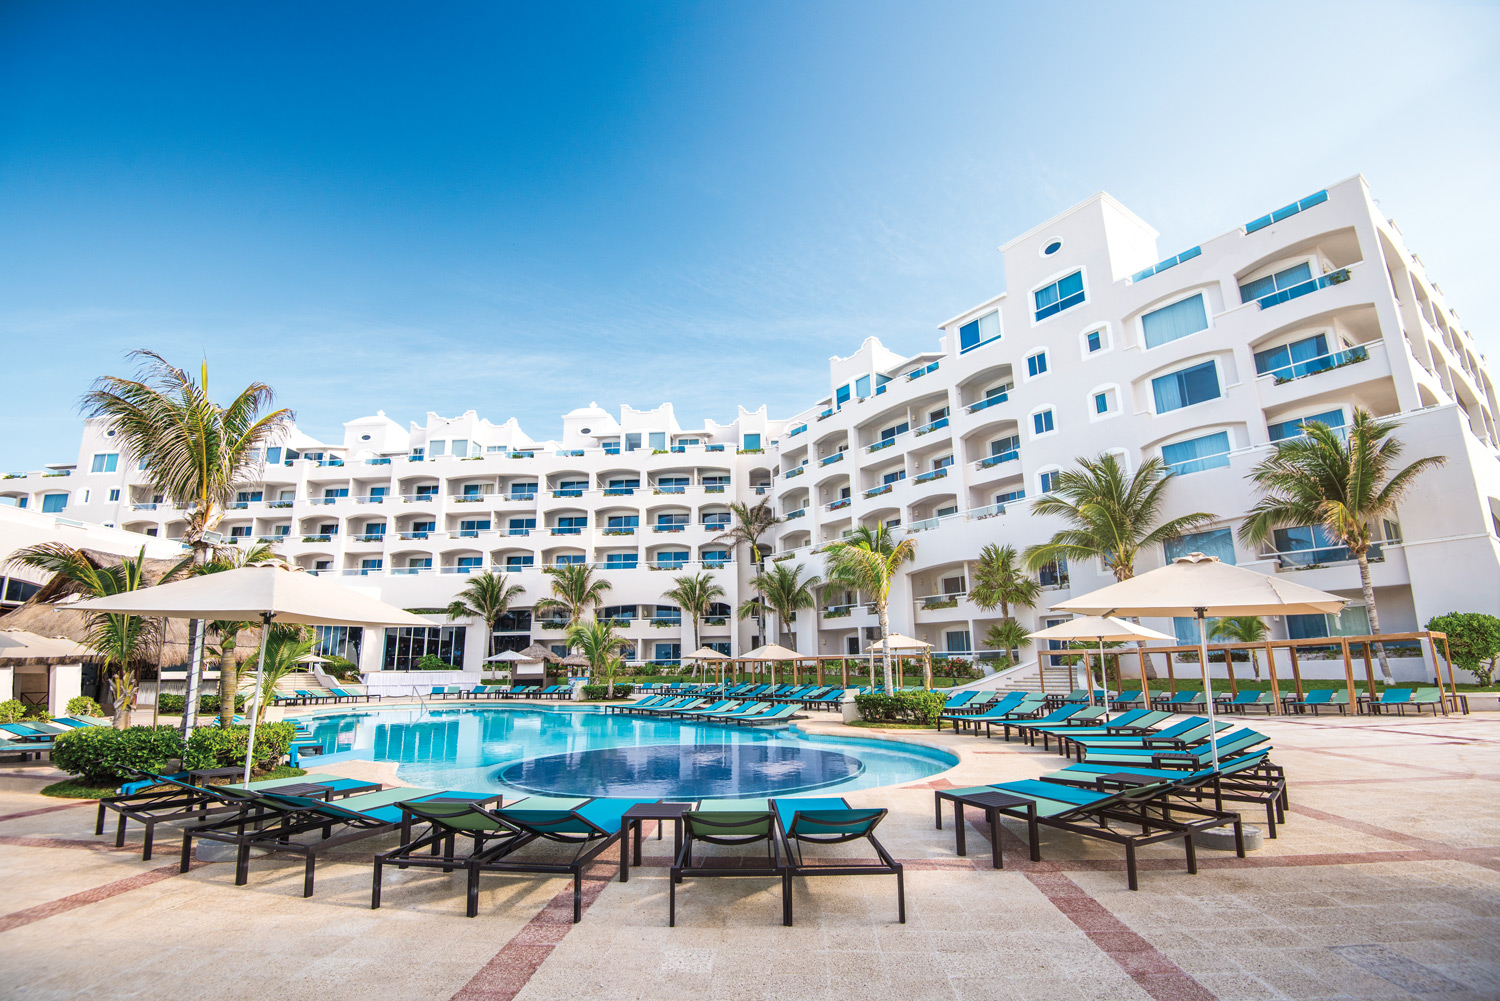 Panama Jack Resorts Cancun Exceptional Service - Recommend-6980